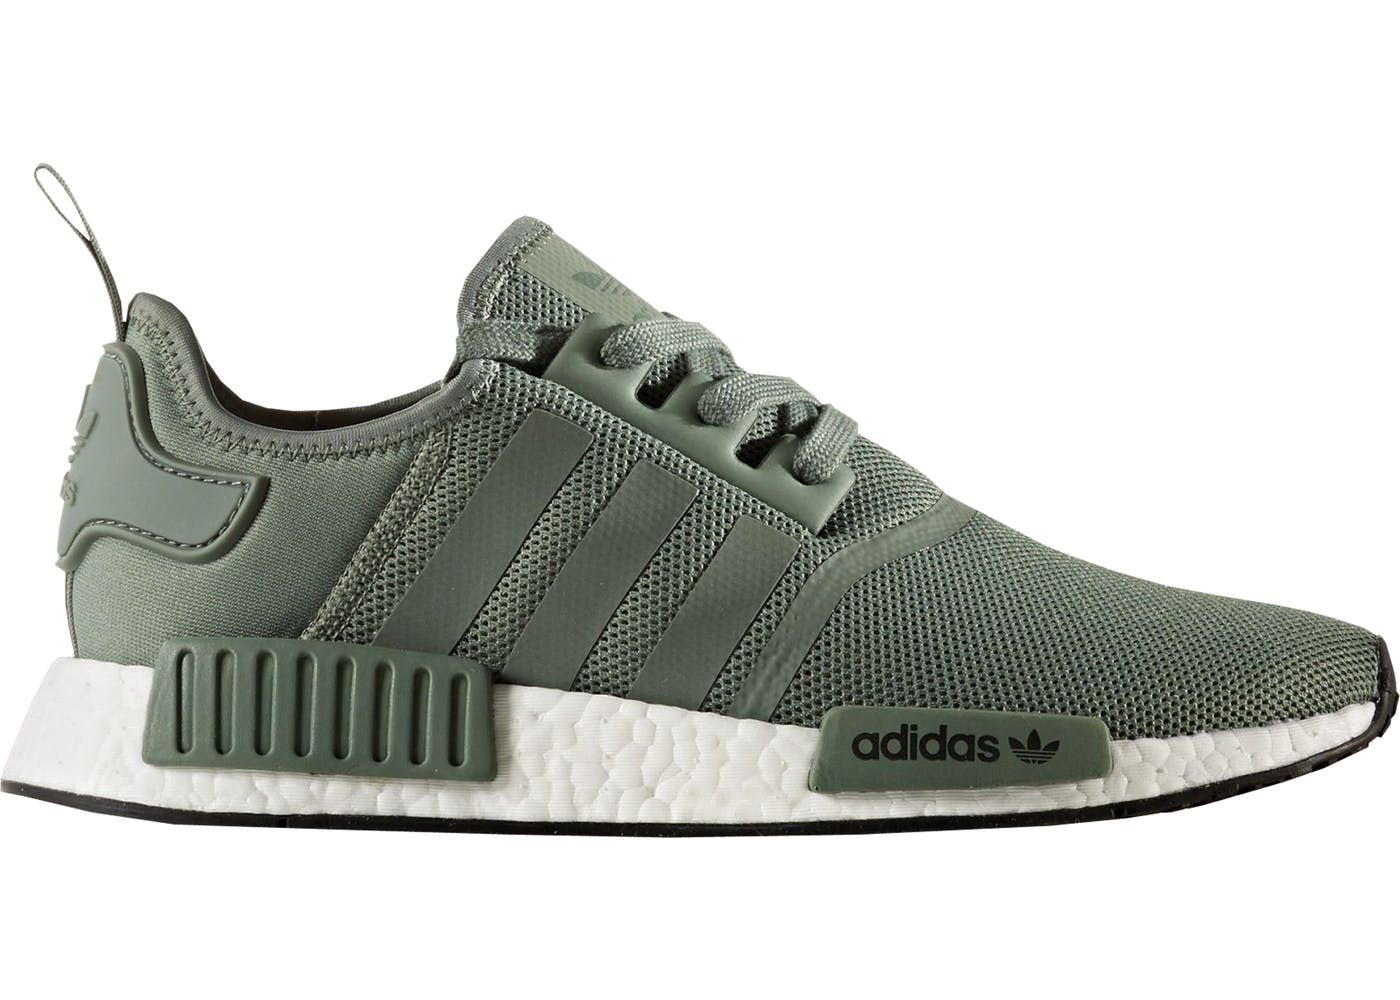 adidas NMD R1 Trace Green in 2020 Sneakers men, Fashion